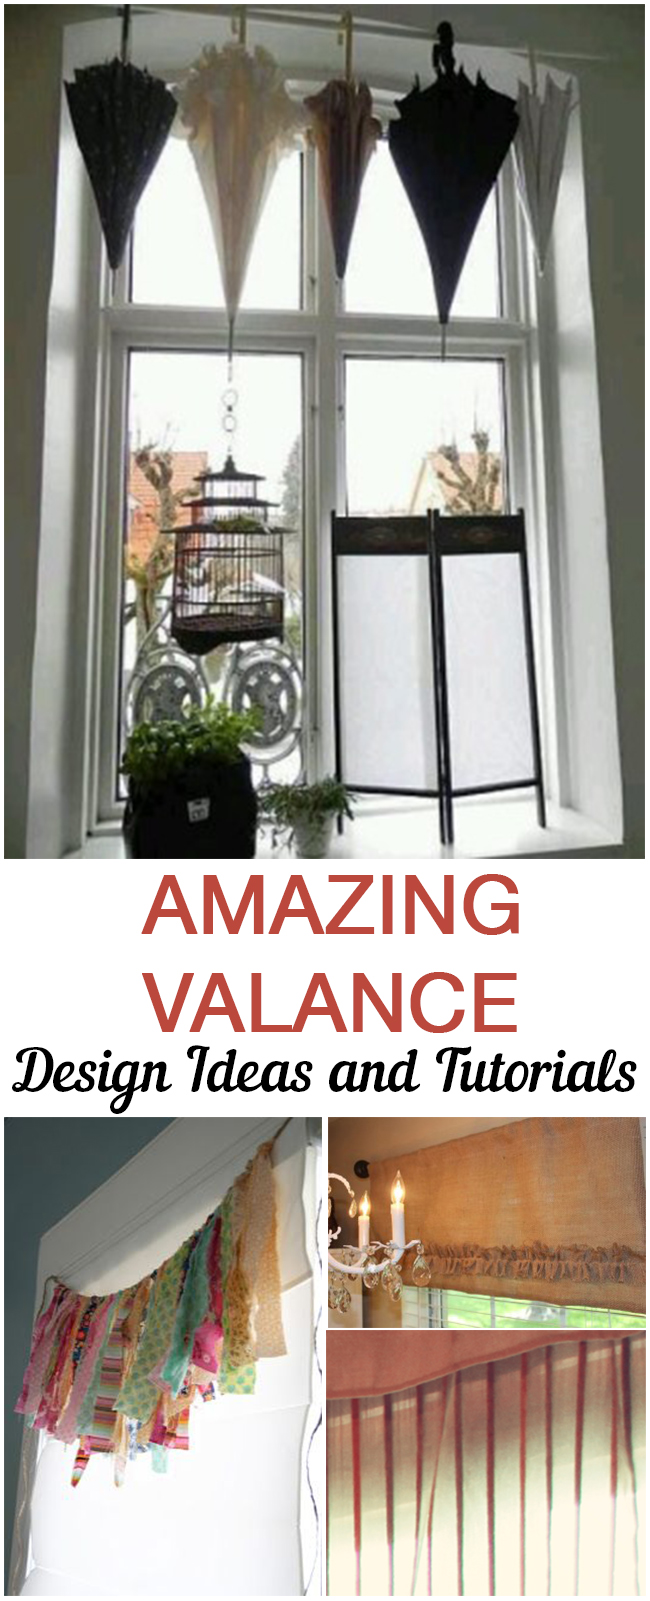 Valance designs, window treatment ideas, DIY window treatments, DIY valance designs, popular pin, DIY home decor, easy home decor, DIY home upgrades, easy home upgrades, tutorials.